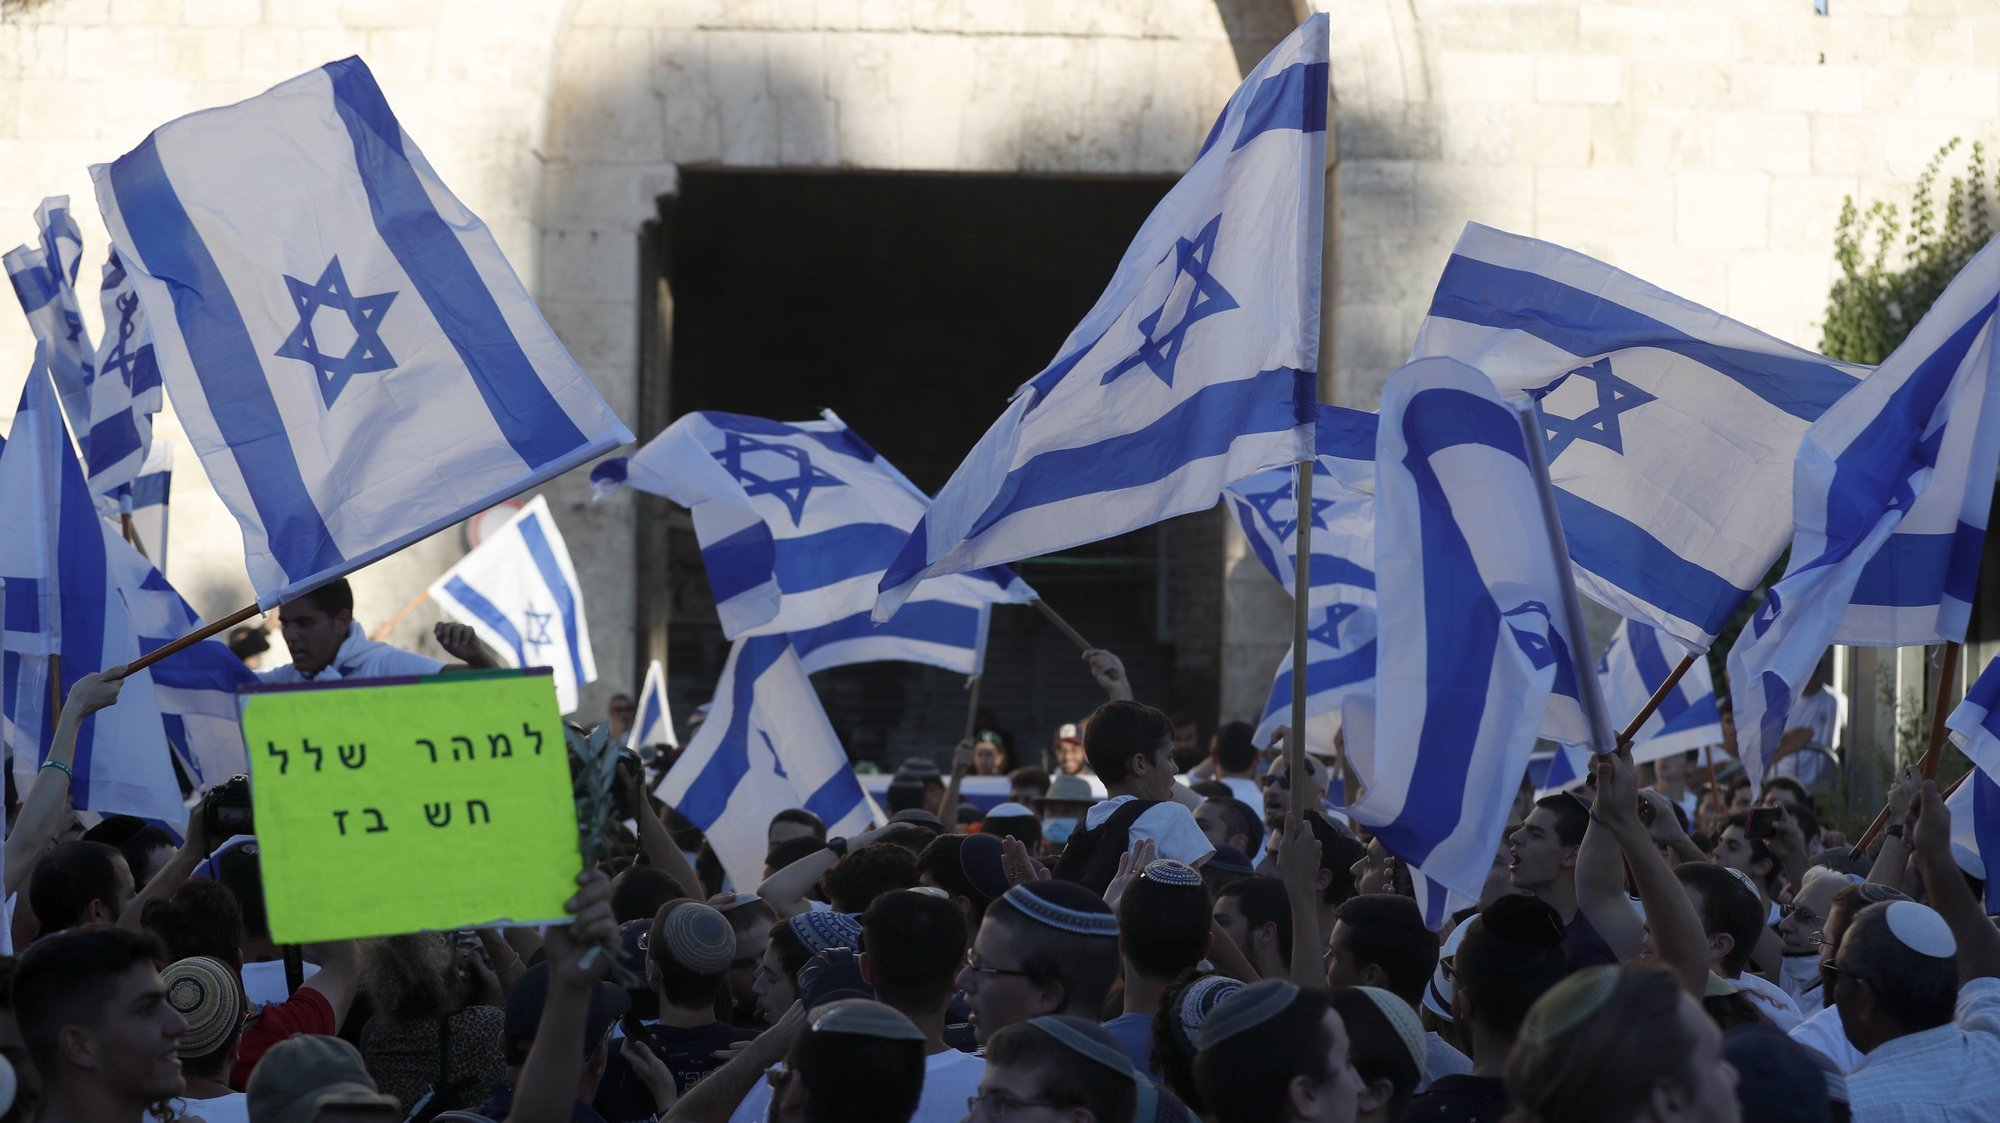 epa09274157 Members of Israeli right-wing groups taking part in the 'Flag March' wave Israeli flags next to Damascus gate of Jerusalem's Old City, 15 June 2021. Media reports state that more than 2,500 Israeli police were deployed to secure the march and the Israeli army is preparing for the possibility of another escalation with Gaza.  EPA/ATEF SAFADI